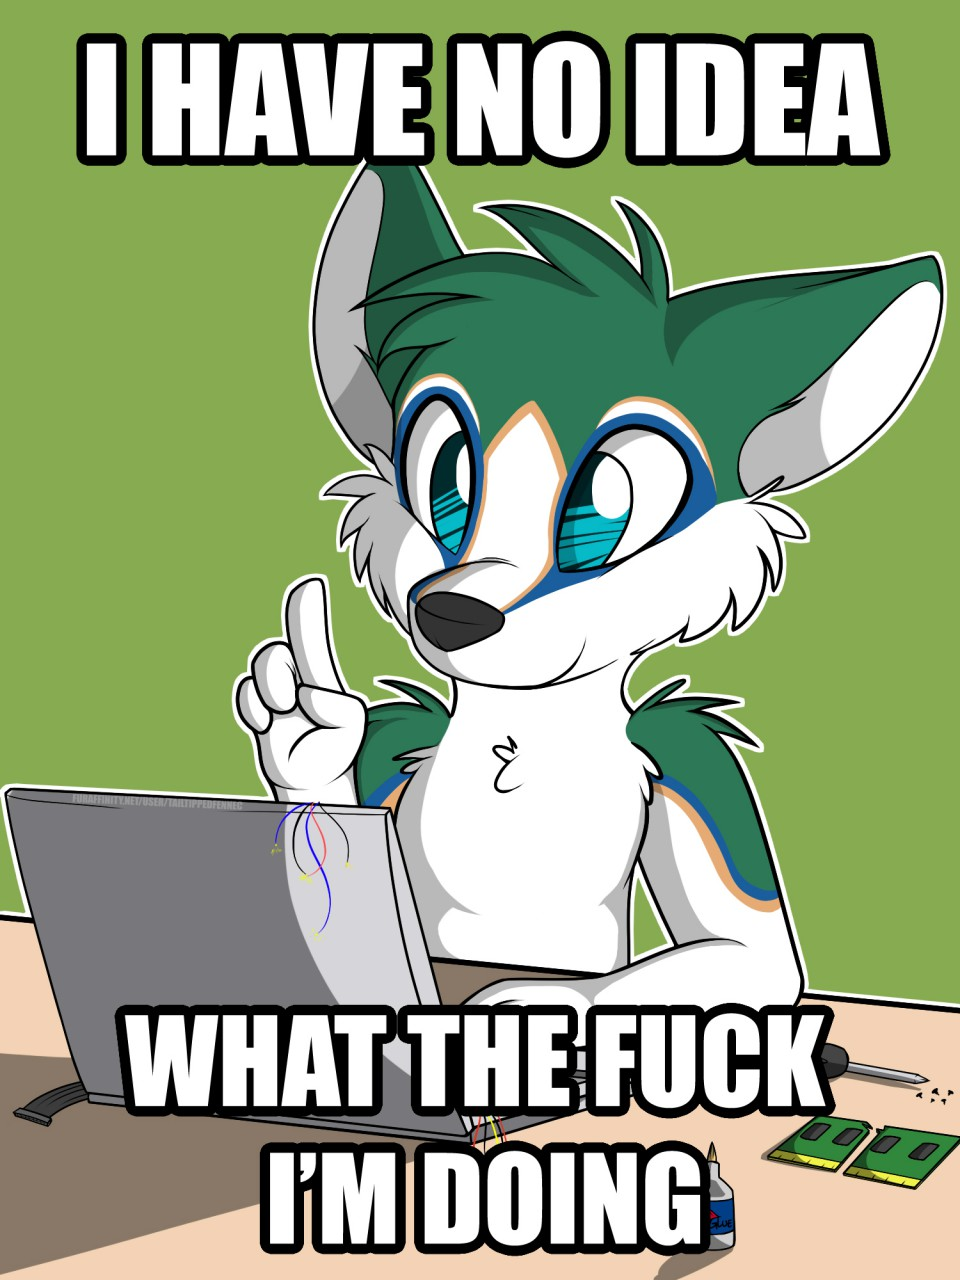 e926 2014 4_fingers anthro black_nose blue_eyes blue_fur canine computer cute derailed_train_of_comments disassembling dog doing_it_wrong english_text fur glue green_background green_fur hi_res humor husky image_macro lol_comments male mammal meme multicolored_fur nekohaiku nude playful profanity reaction_image screwdriver simple_background sitting smile solo table tailtippedfennec text tools watermark white_fur wire yellow_fur